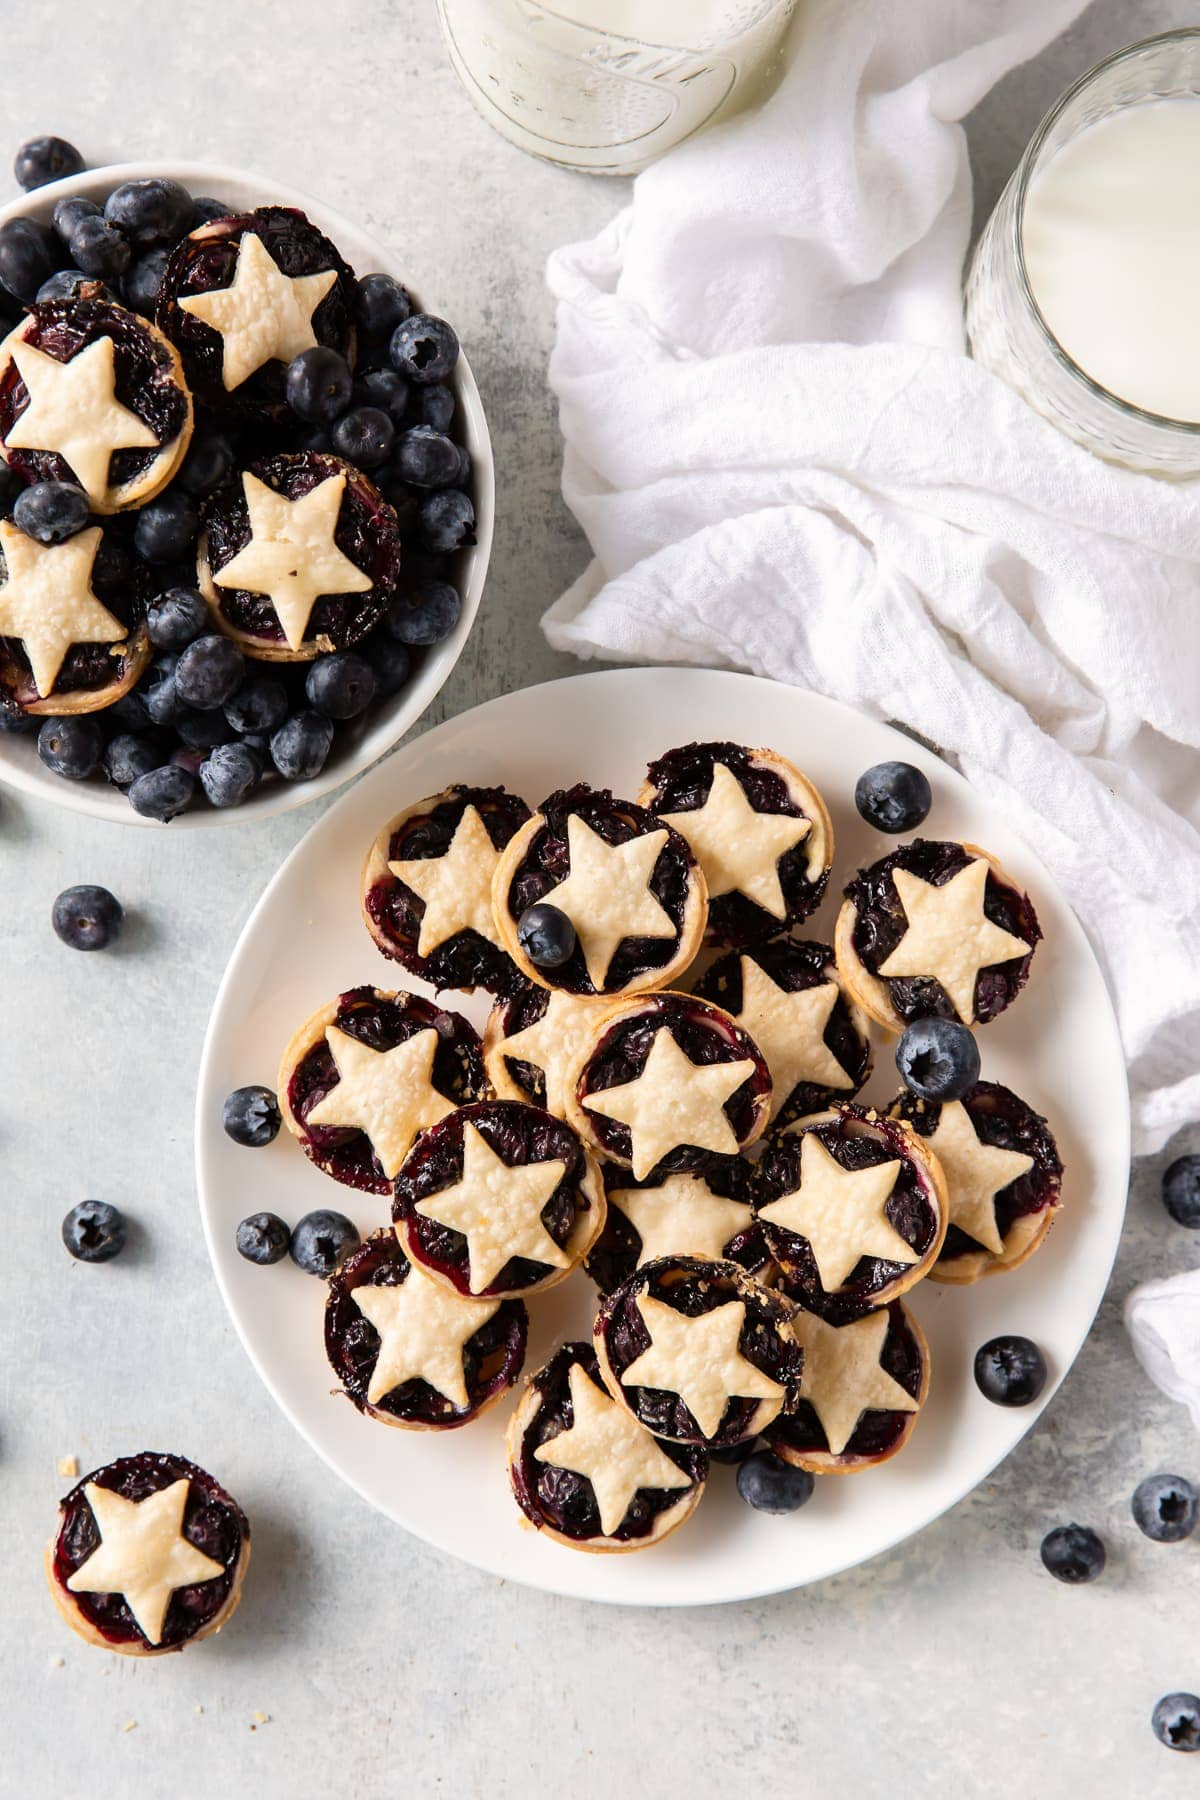 plate of mini blueberry pies next to bowl of blueberries with pies on top